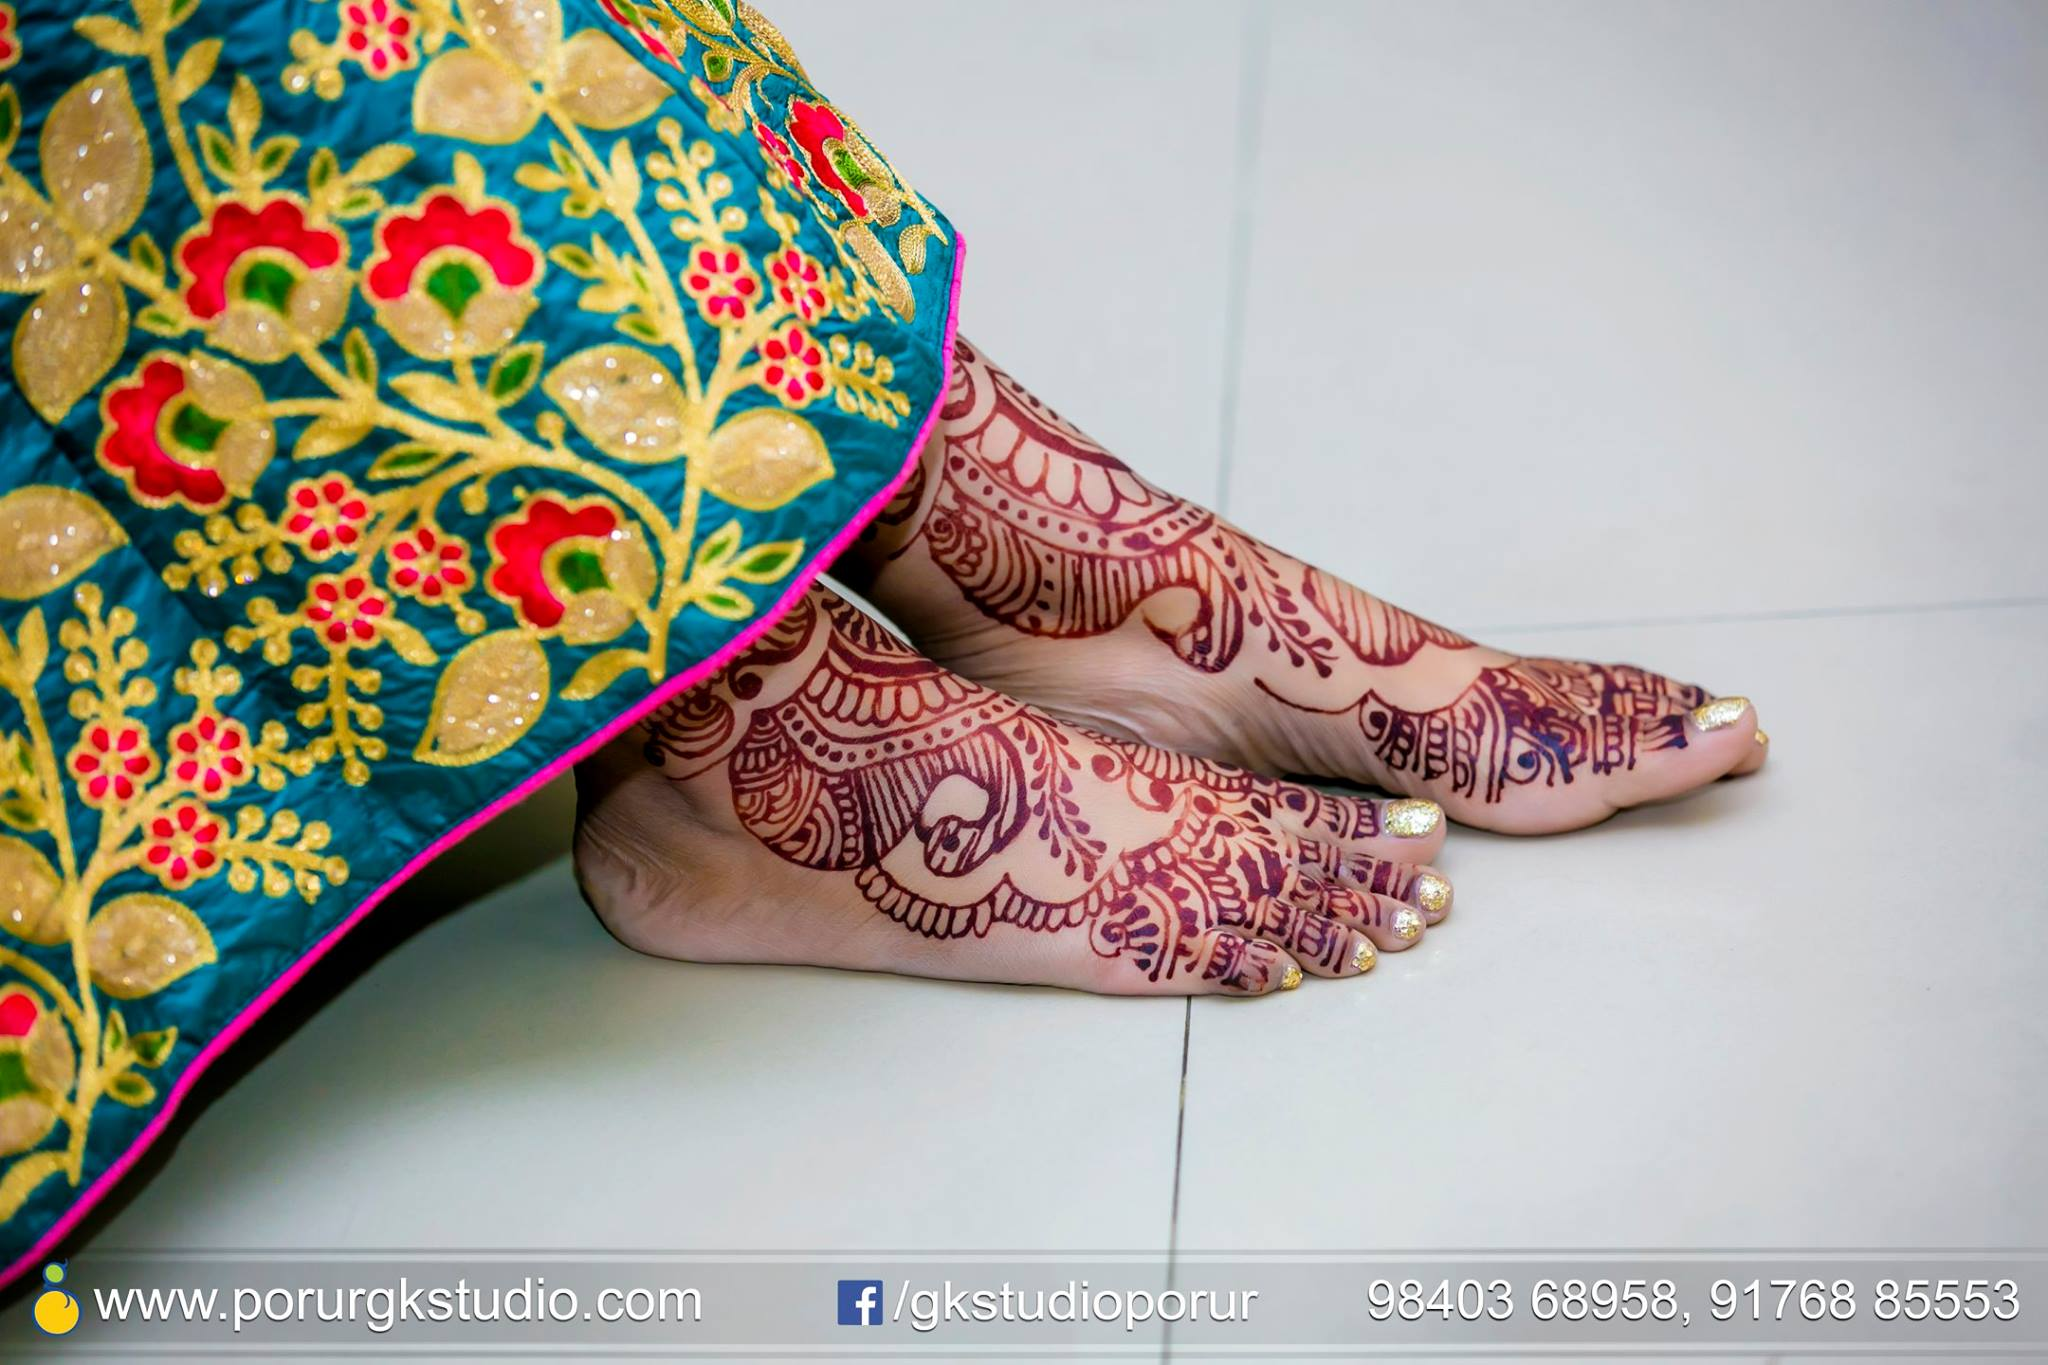 Mehndi Designs For Feet : Mehndi designs for feet bridal photo